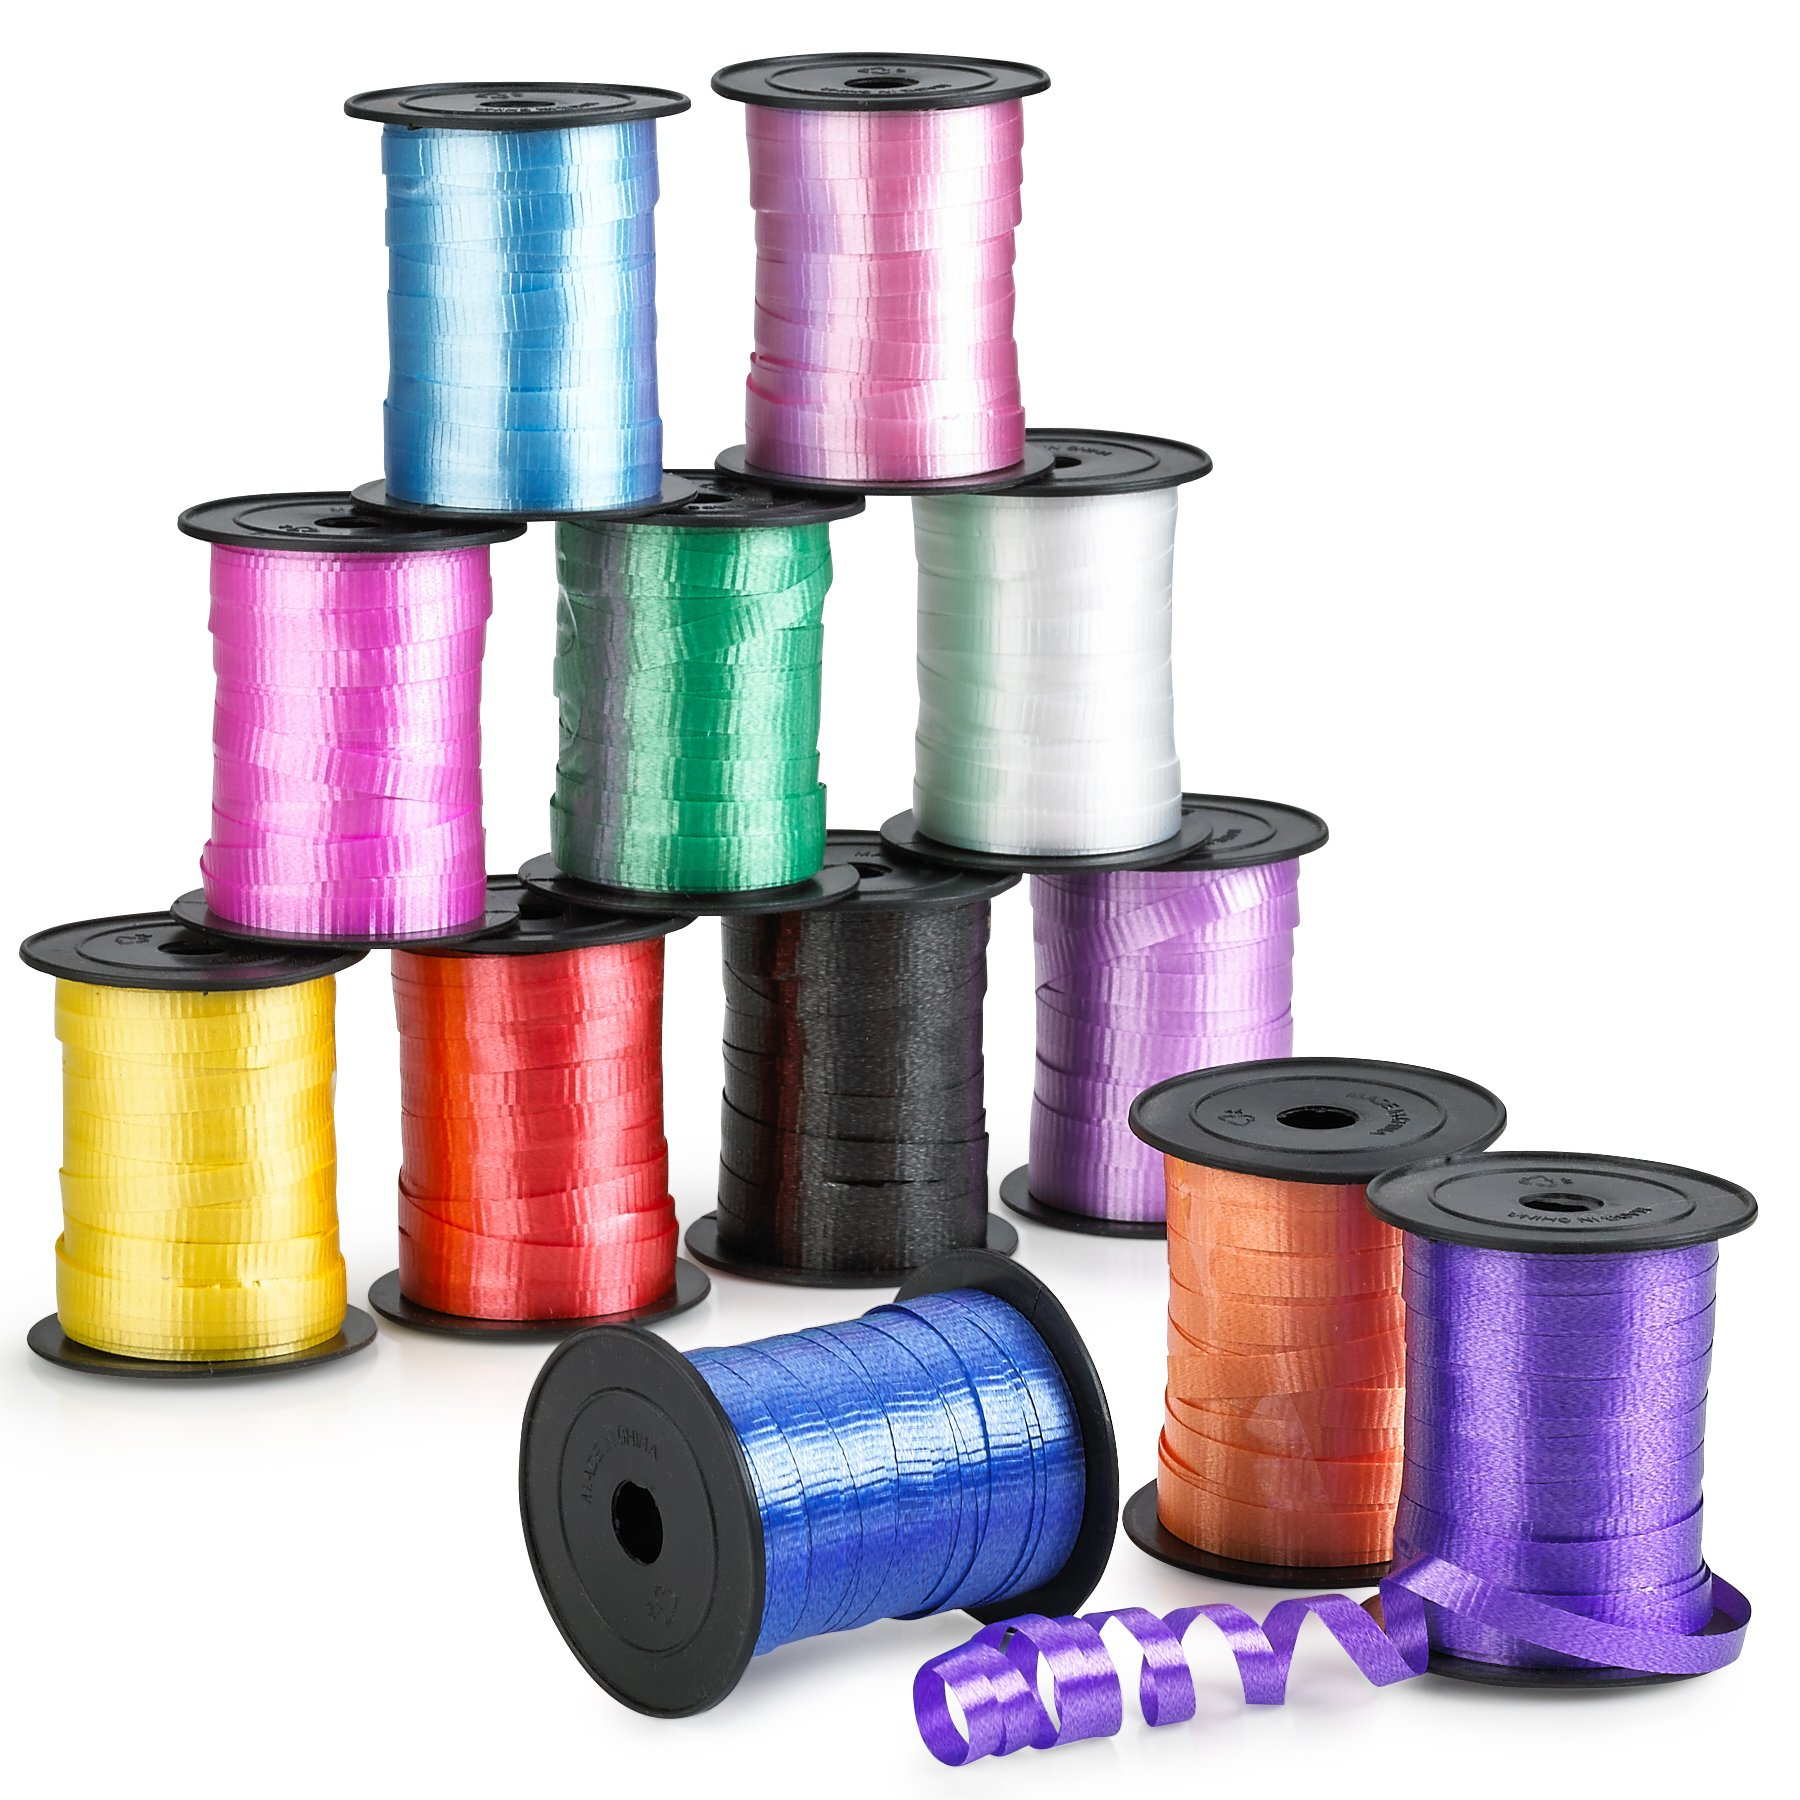 Kidsco Curling Ribbon - Colorful Assorted- 12 Pack- for Florist, Flowers, Arts & Crafts, Gift Wrapping, Hair, School, Girls, Etc.